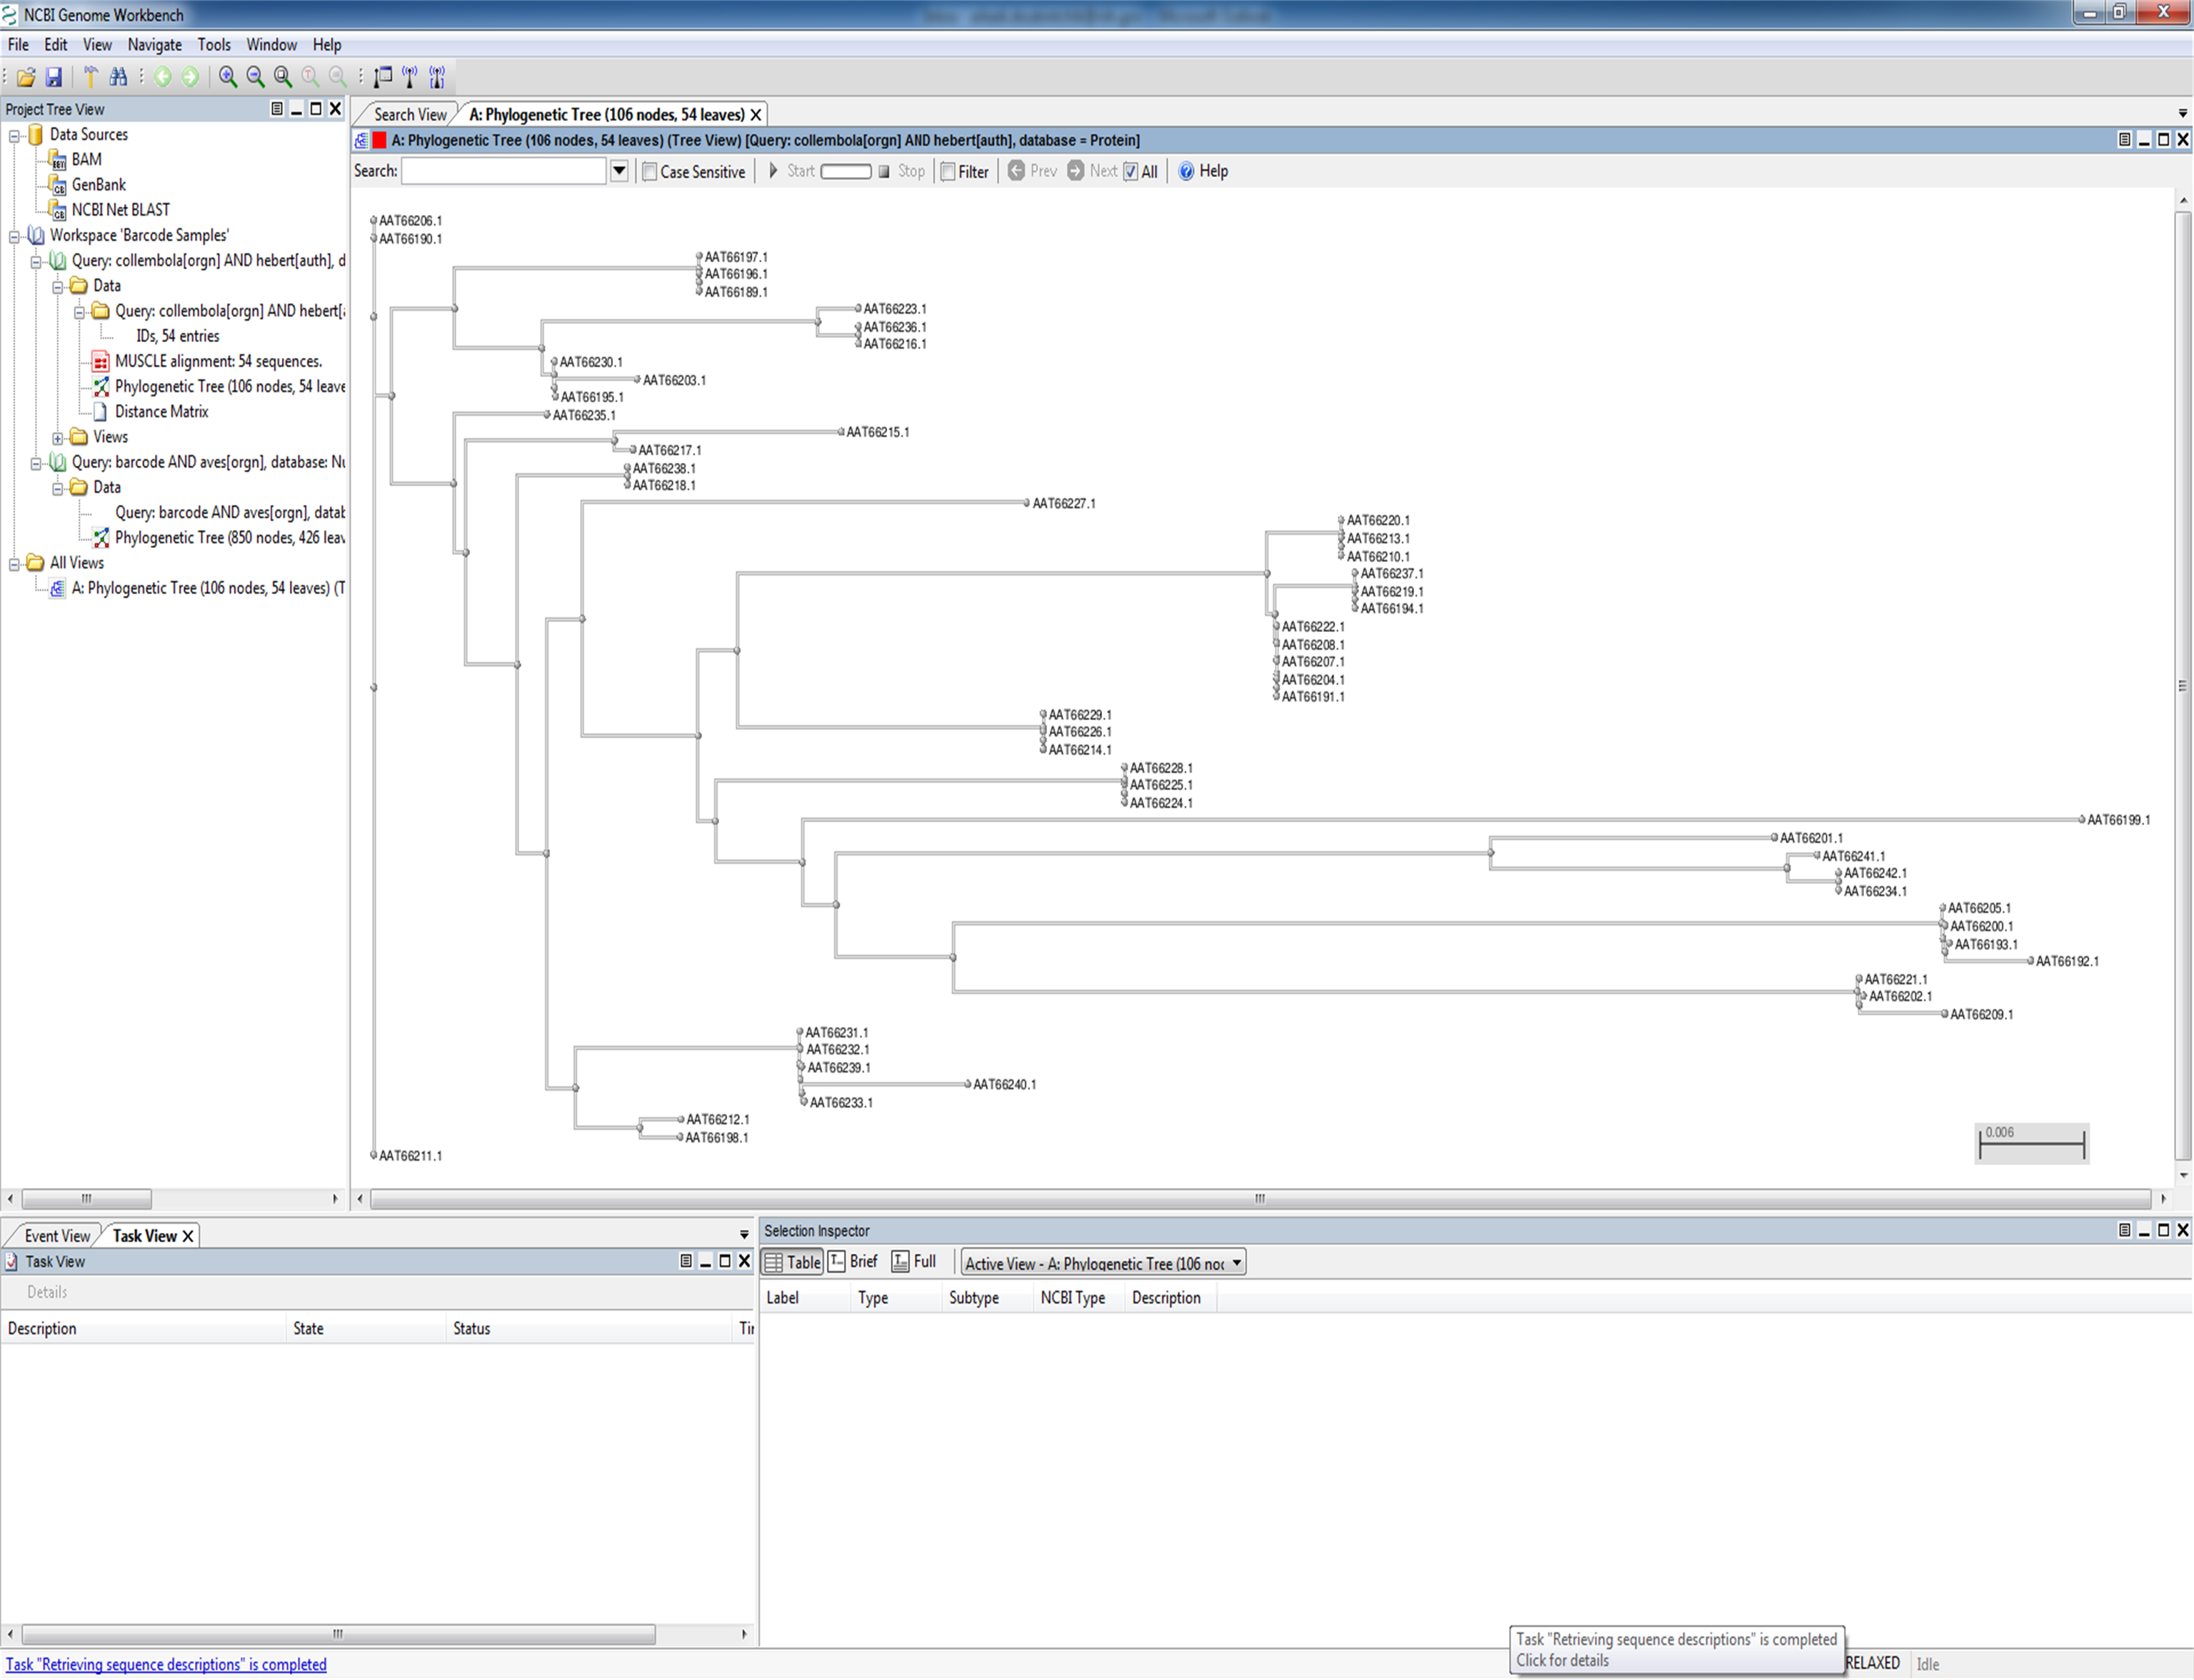 Open phylogenetic tree